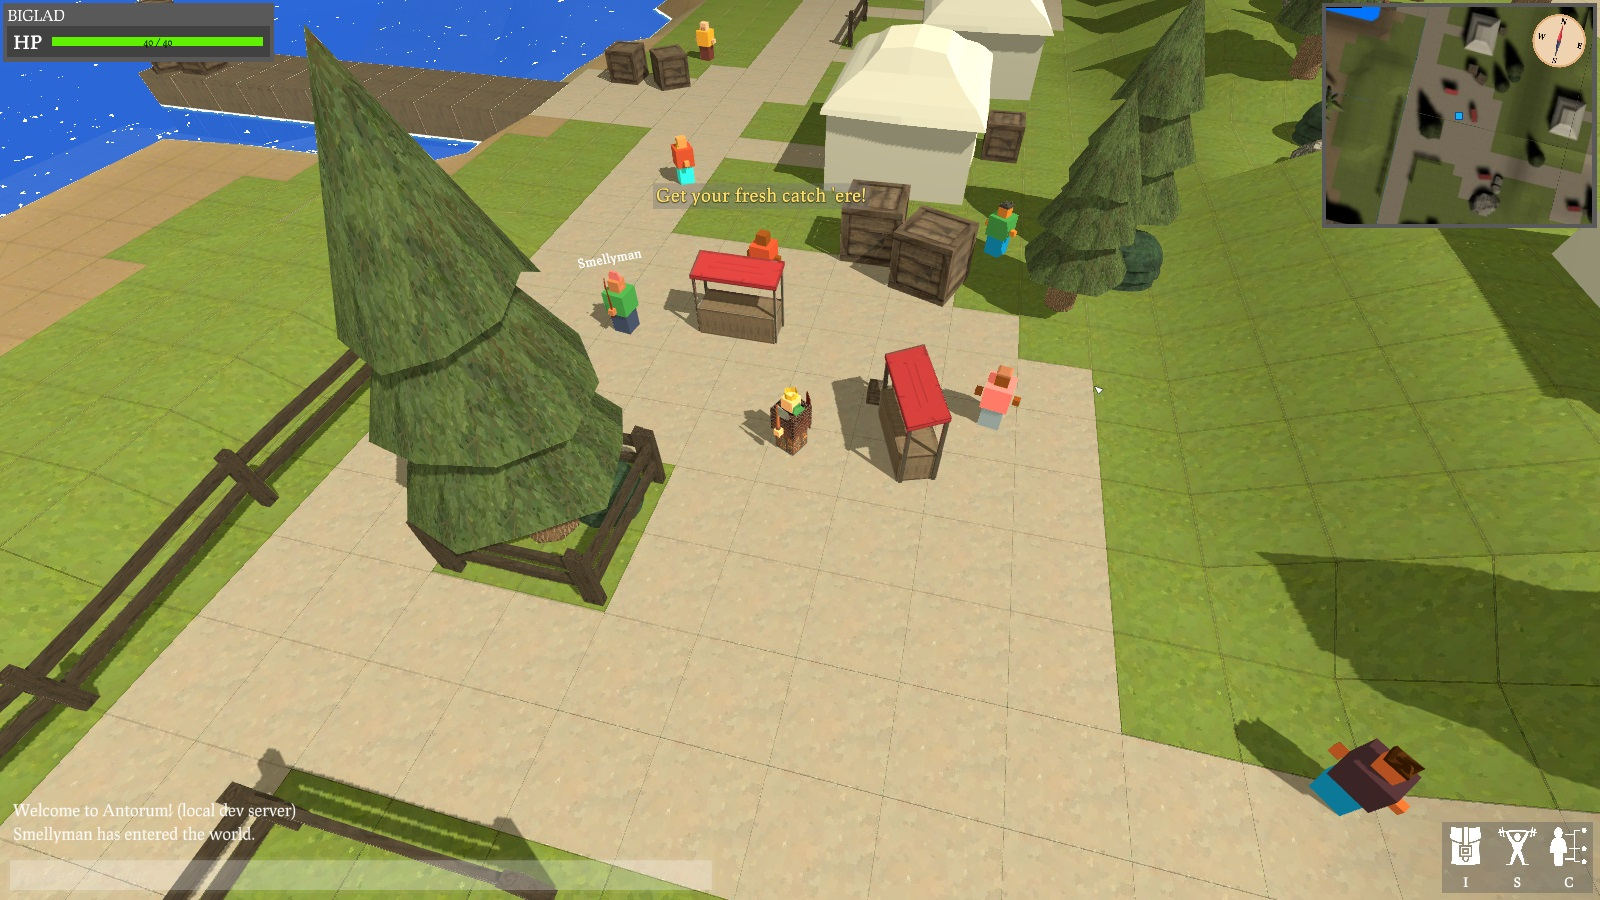 A small marketplace area with a few merchants